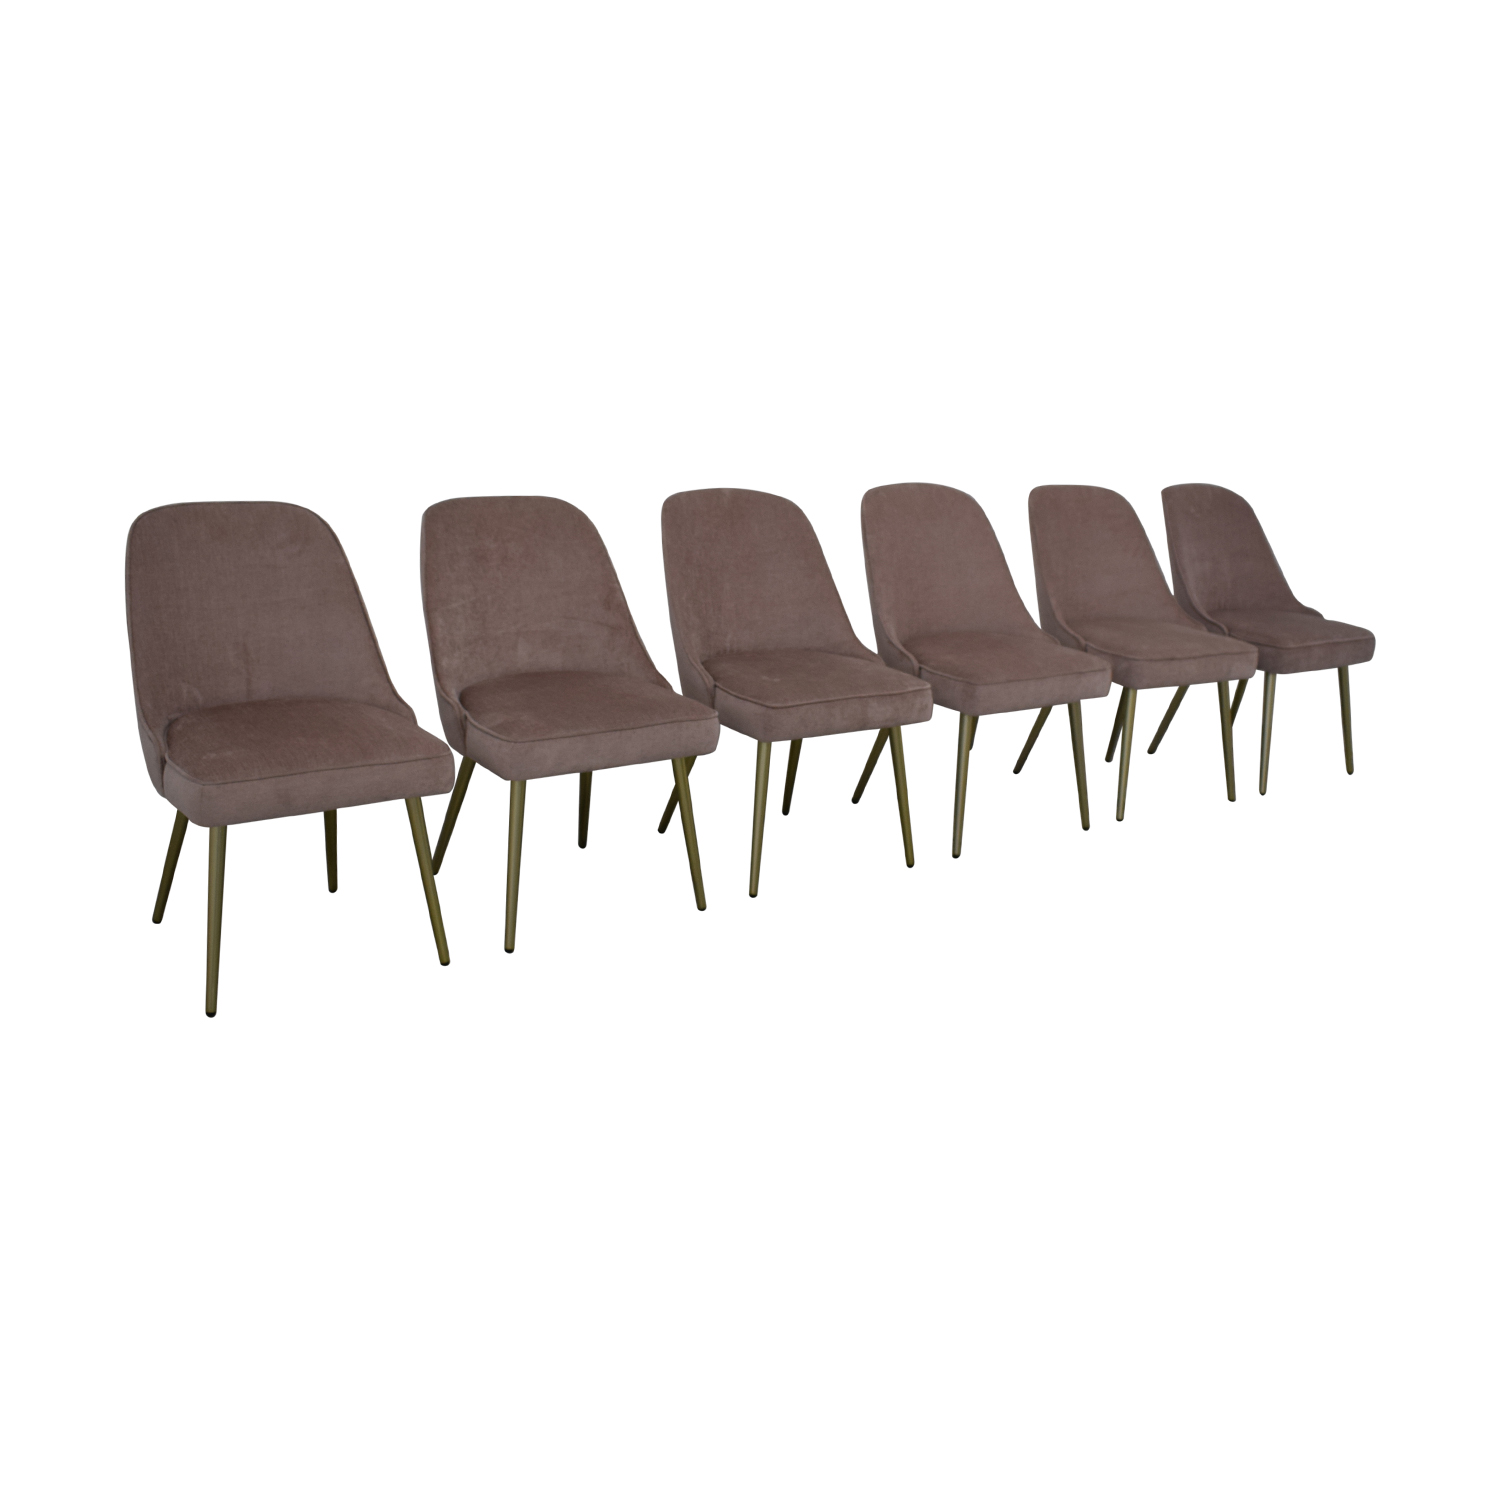 West Elm Mid Century Upholstered Dining Chairs / Chairs